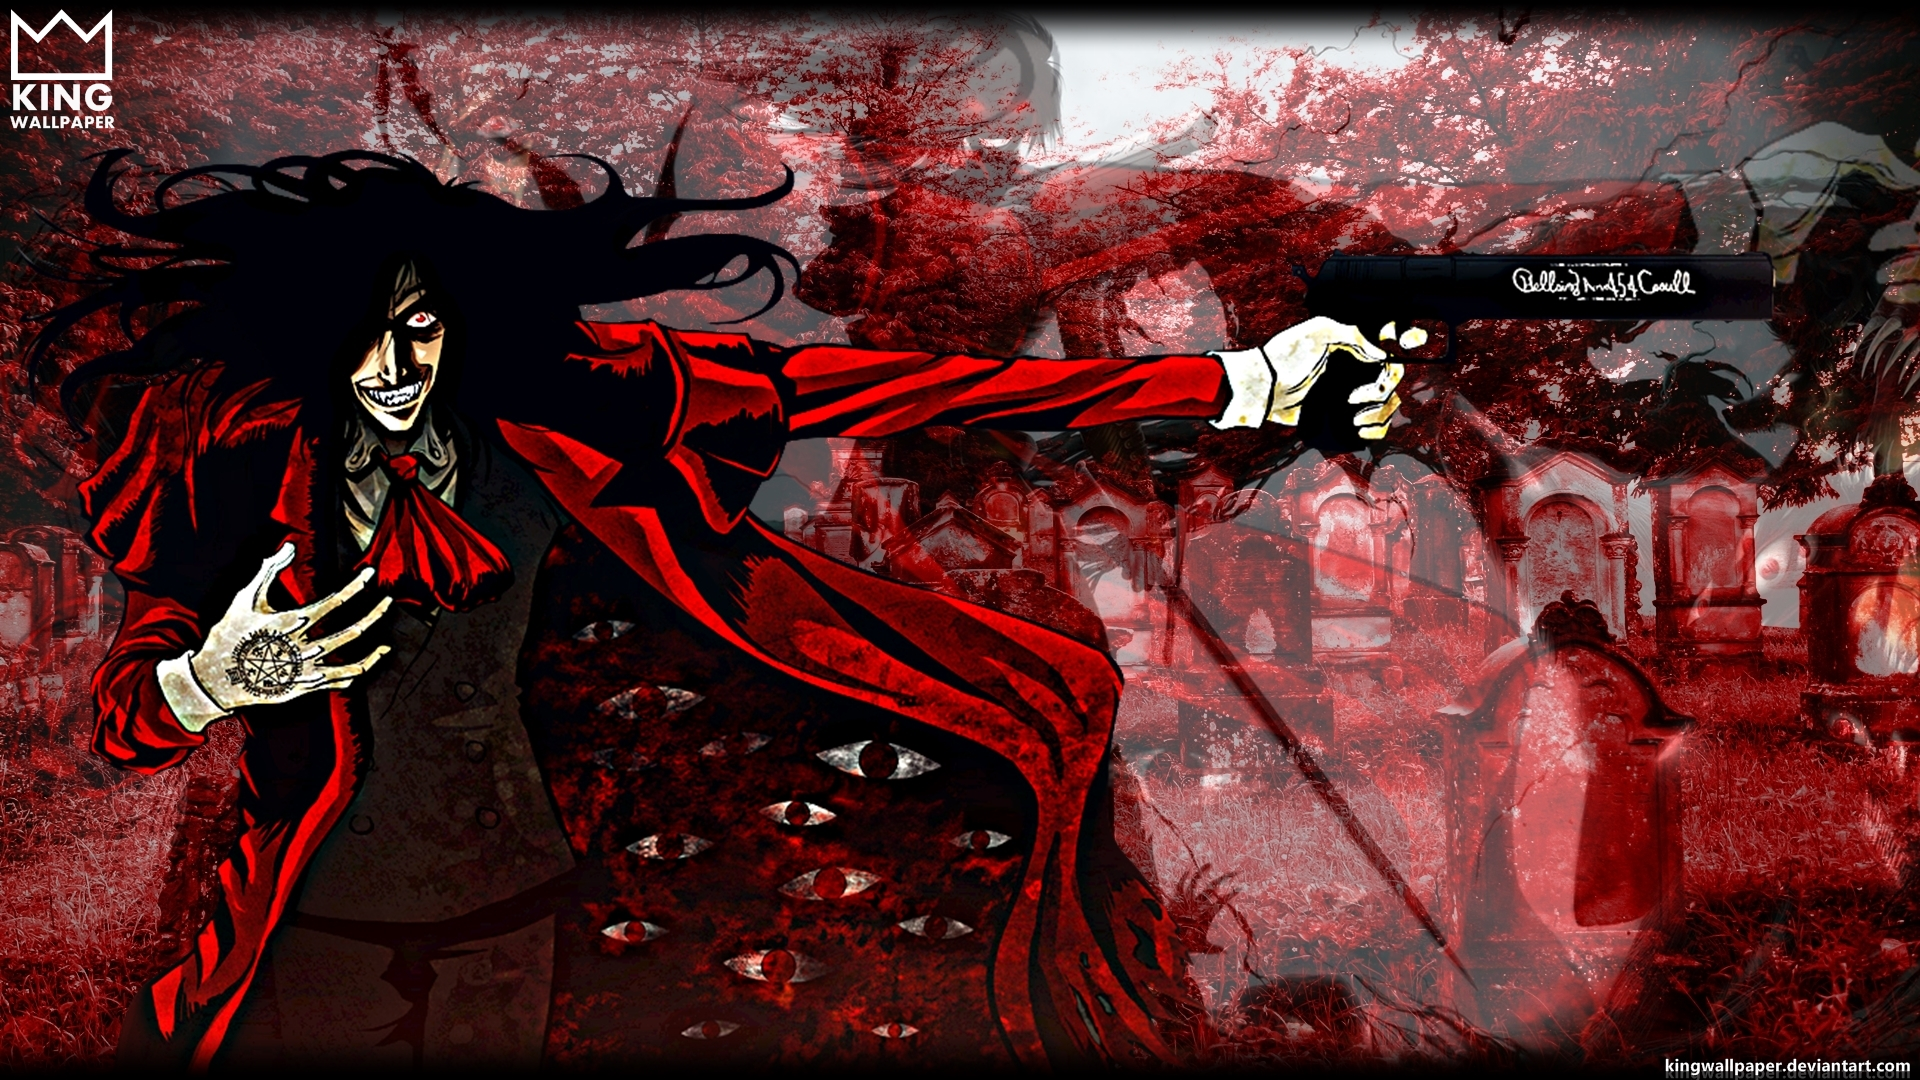 Hellsing wallpaper by kingwallpaper on deviantart - Anime hellsing wallpaper ...